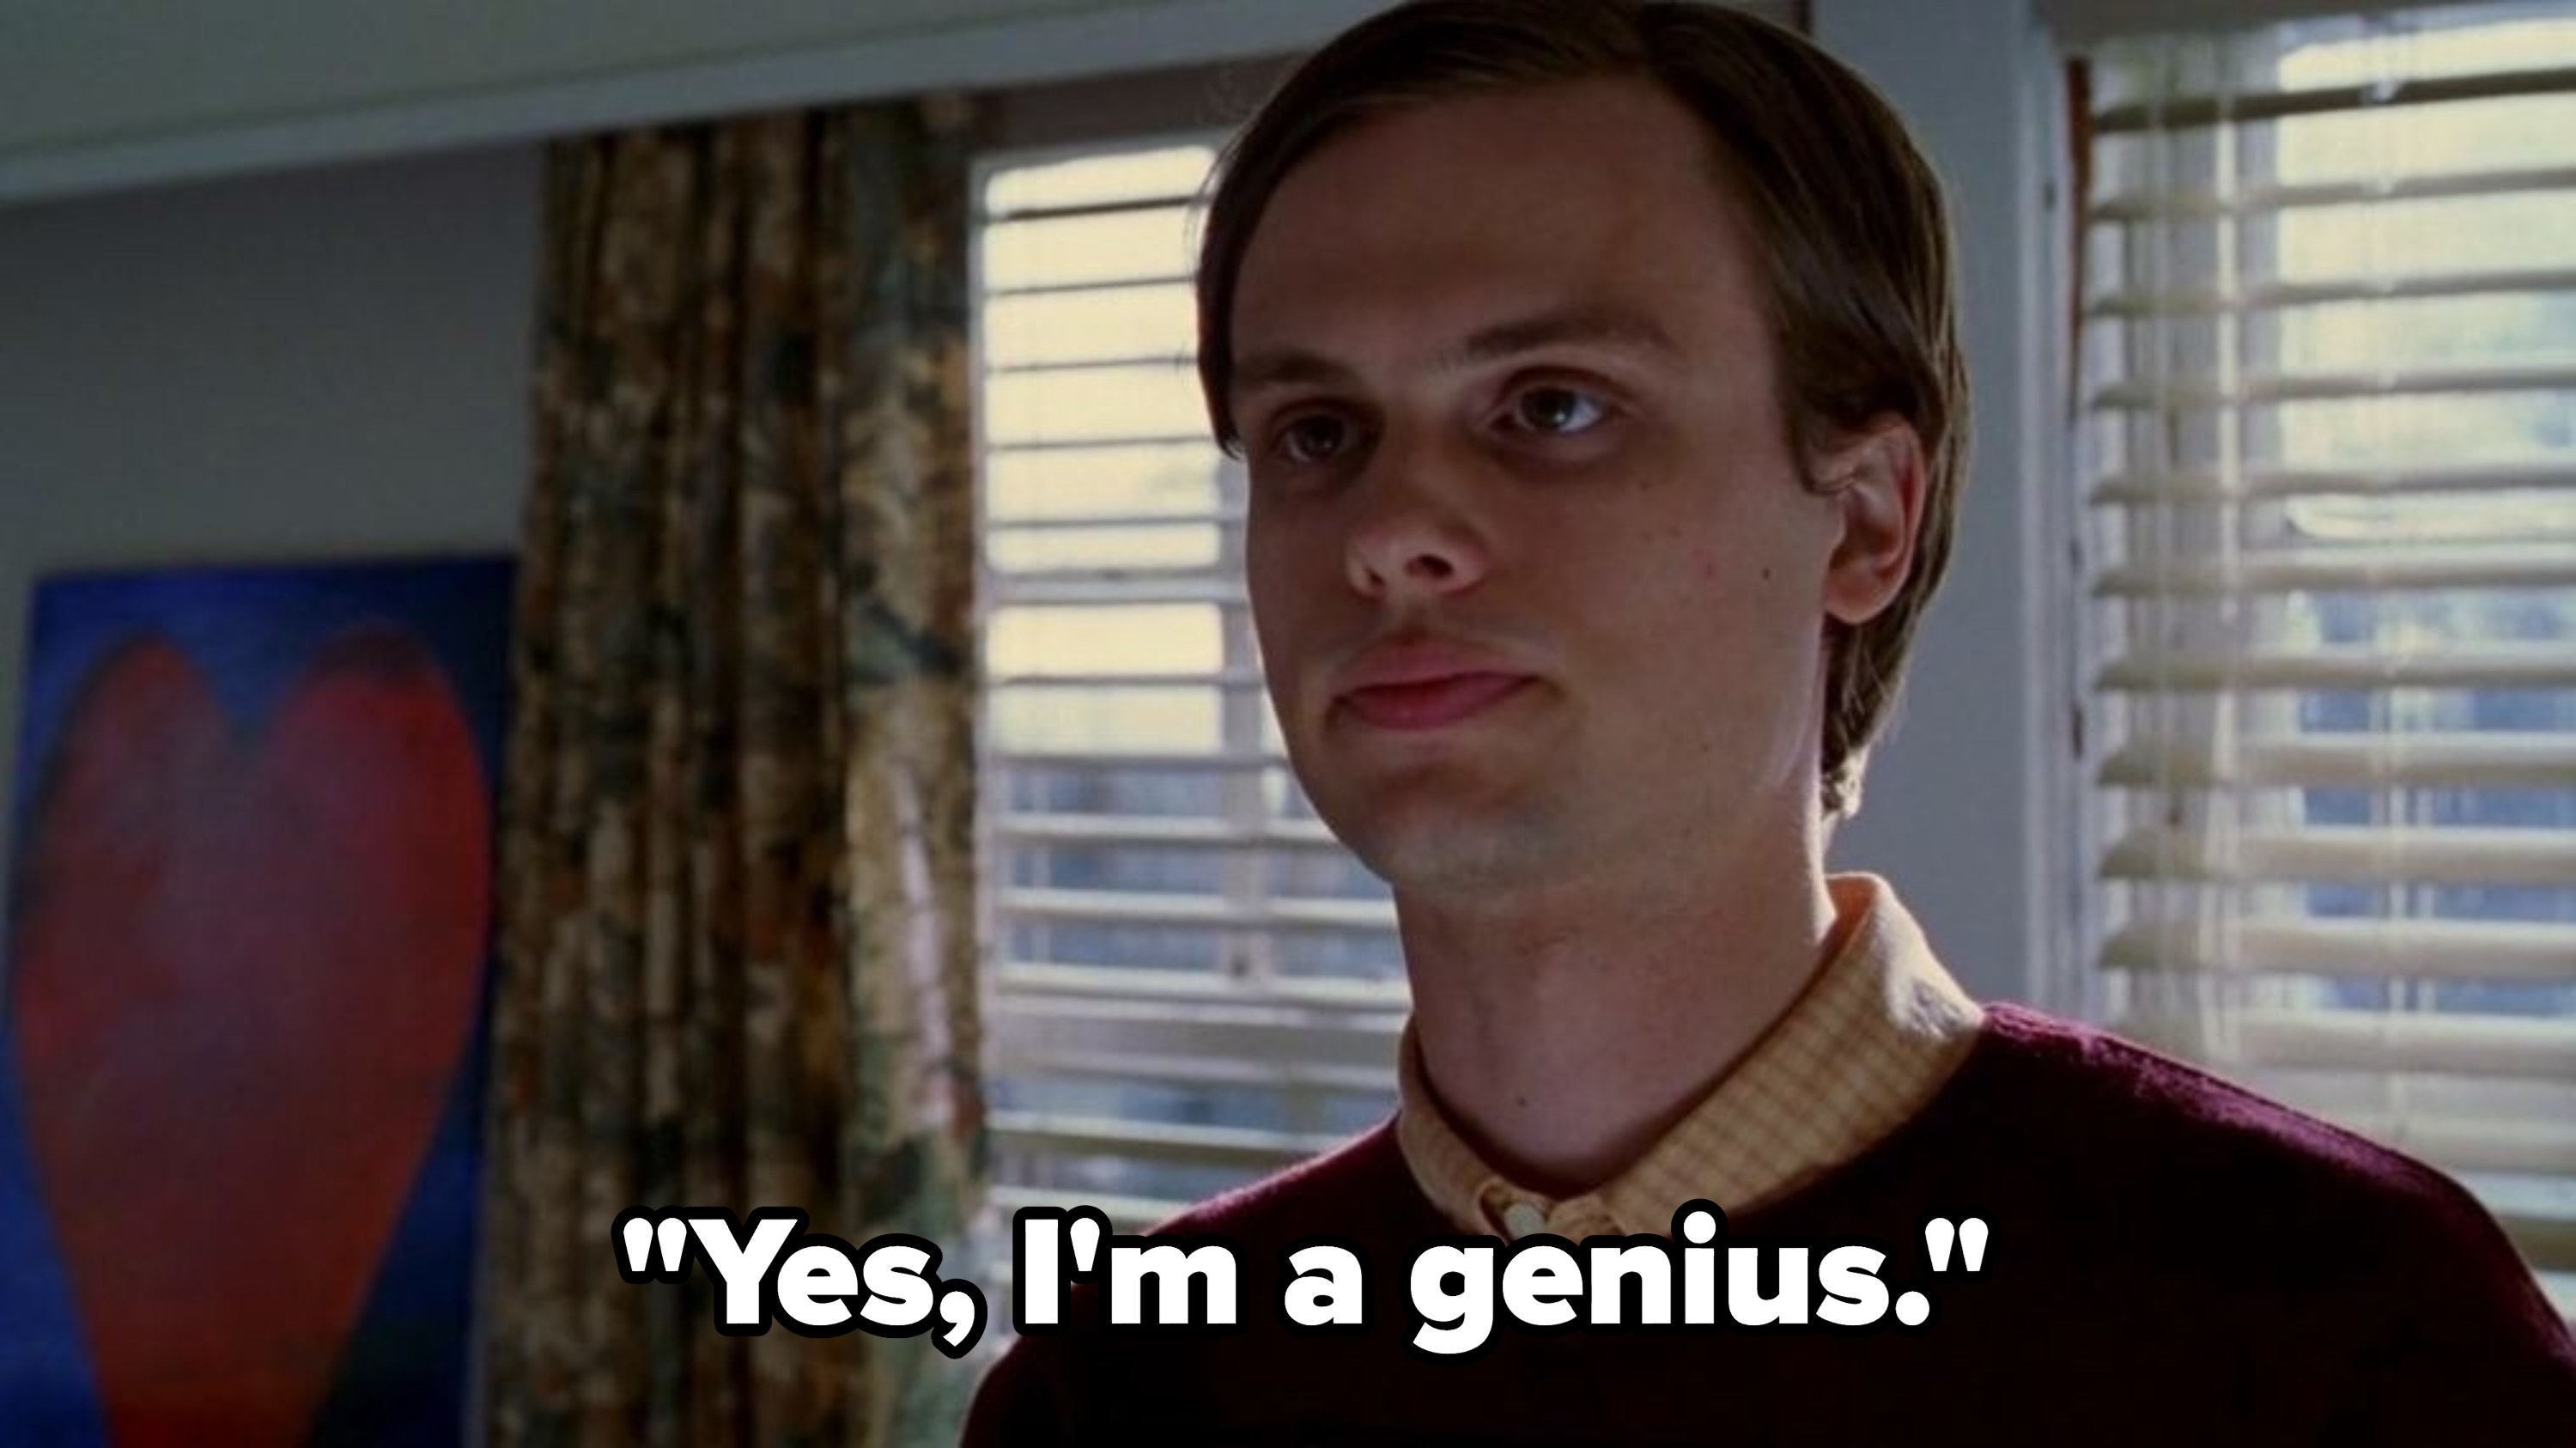 Spencer saying that he's a genius.